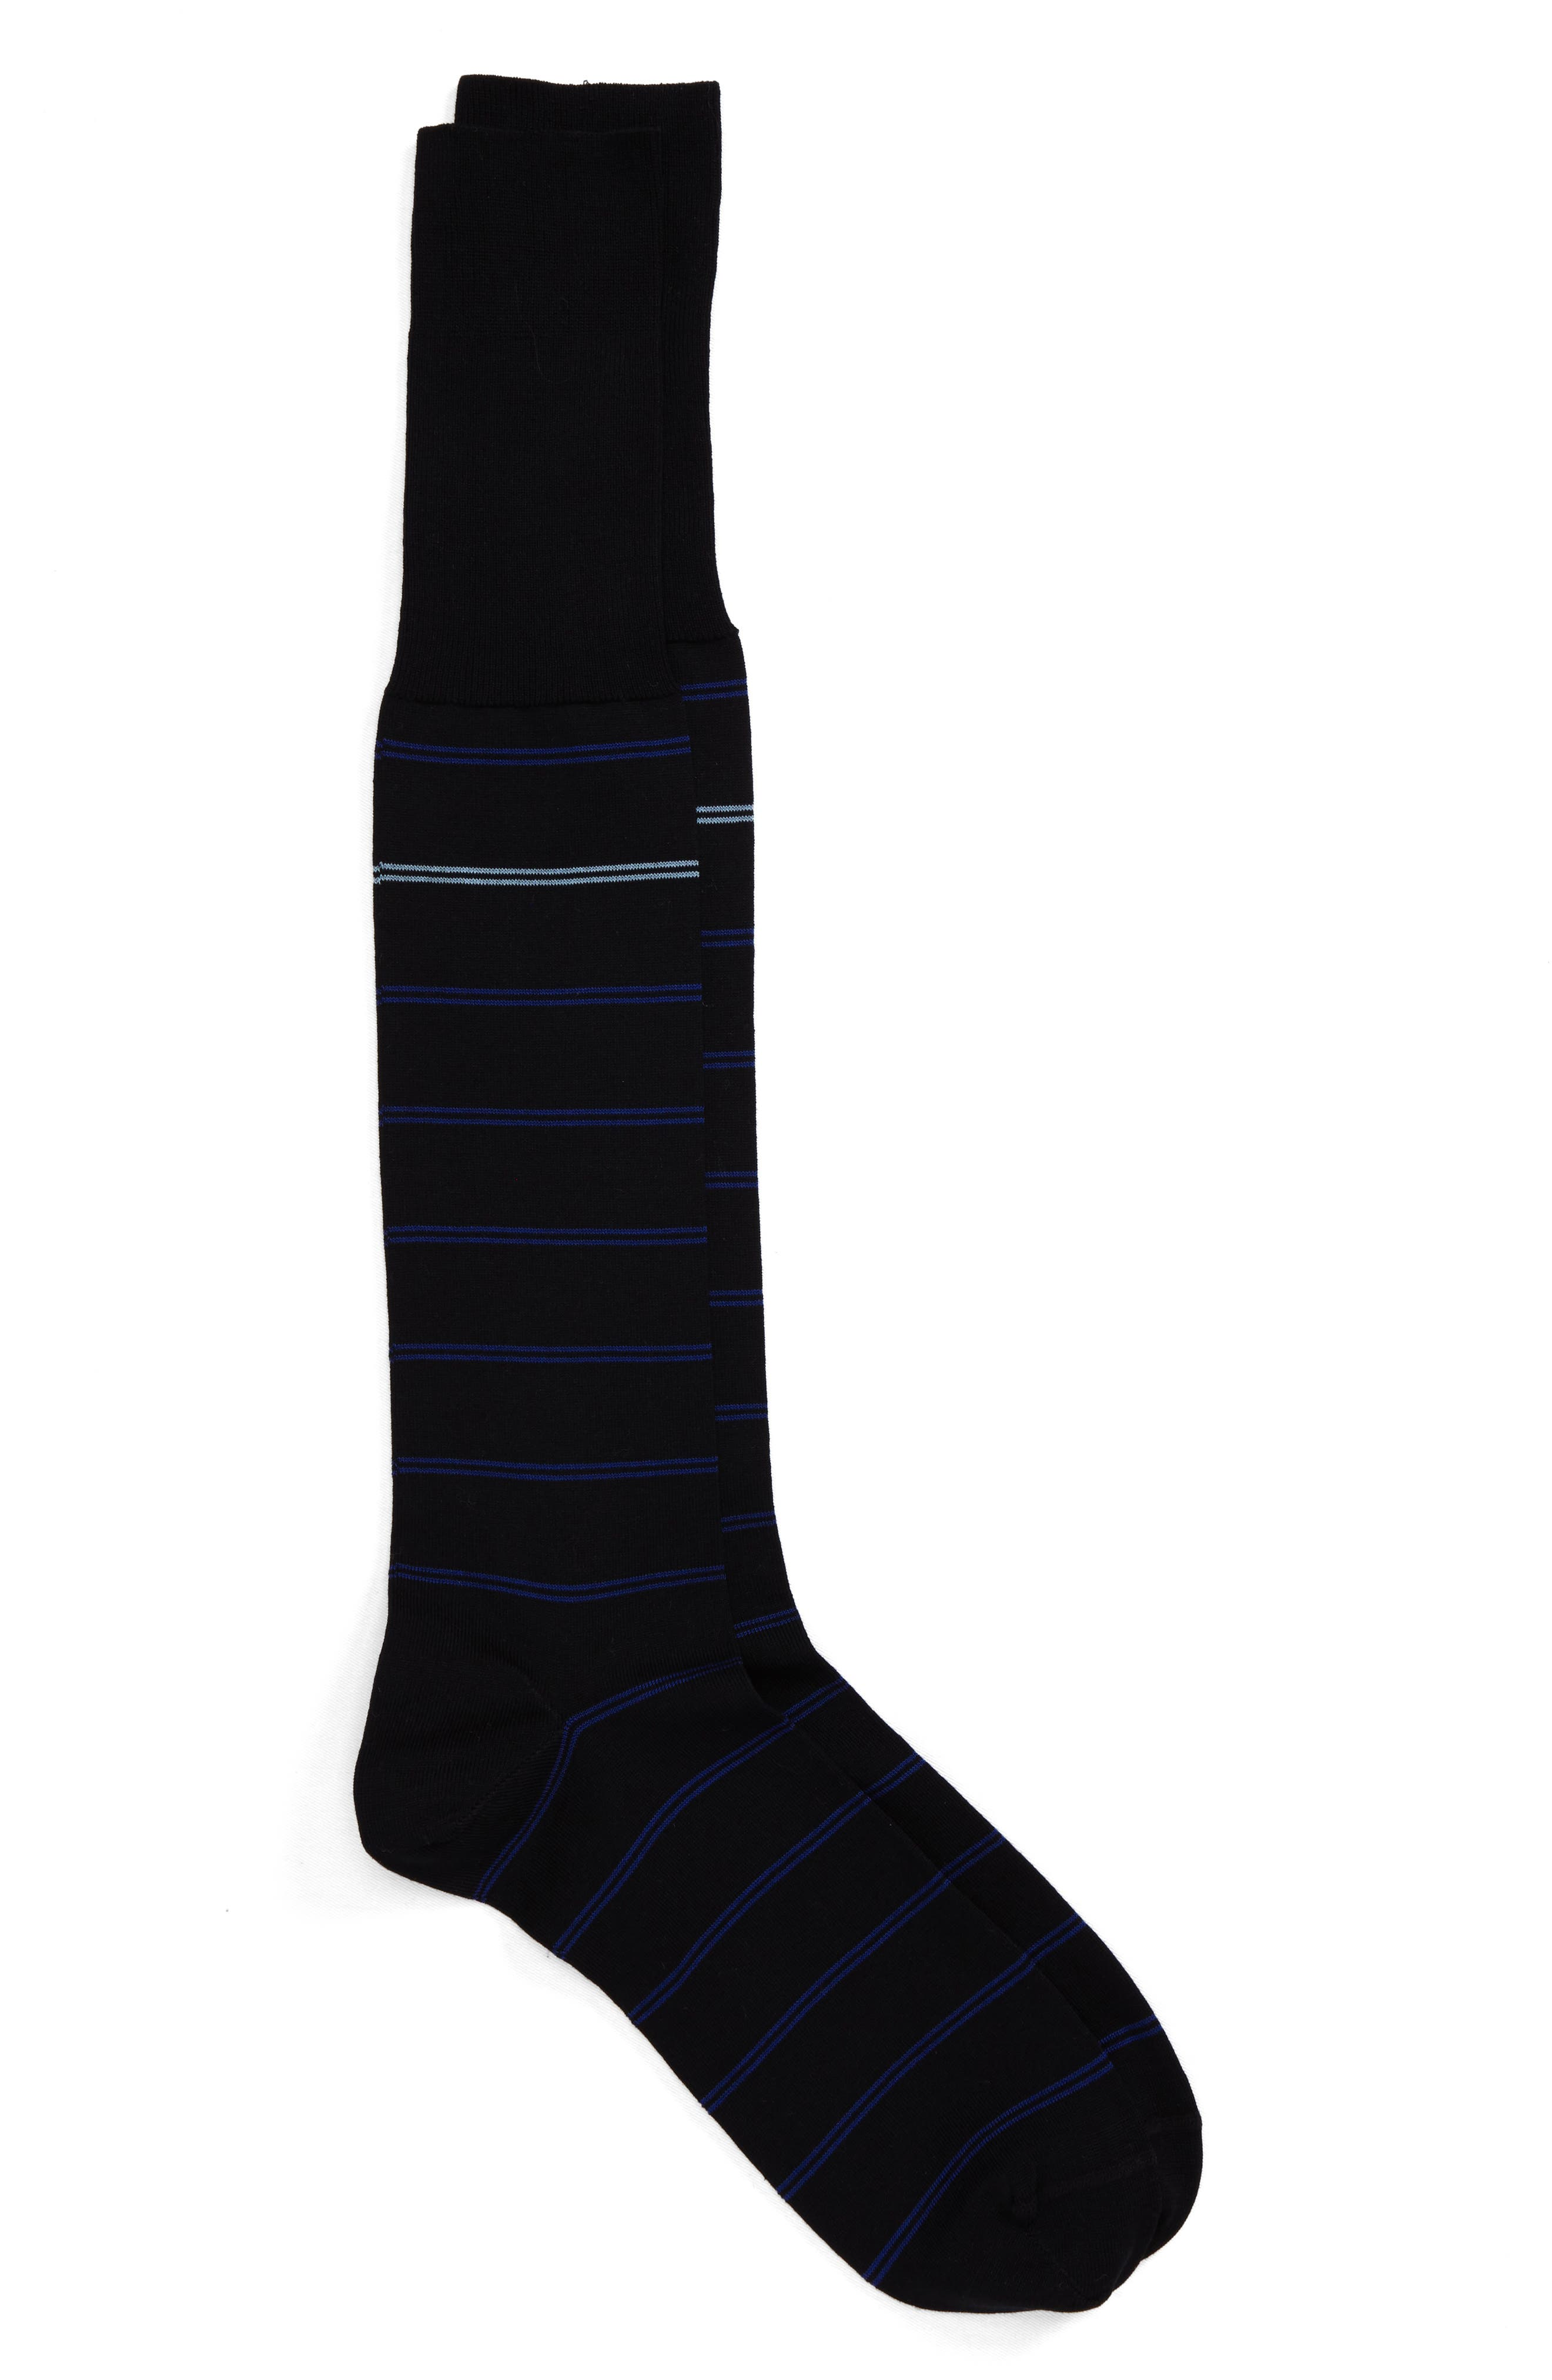 Parallel Lines Over the Calf Socks,                         Main,                         color, Black/ Blue